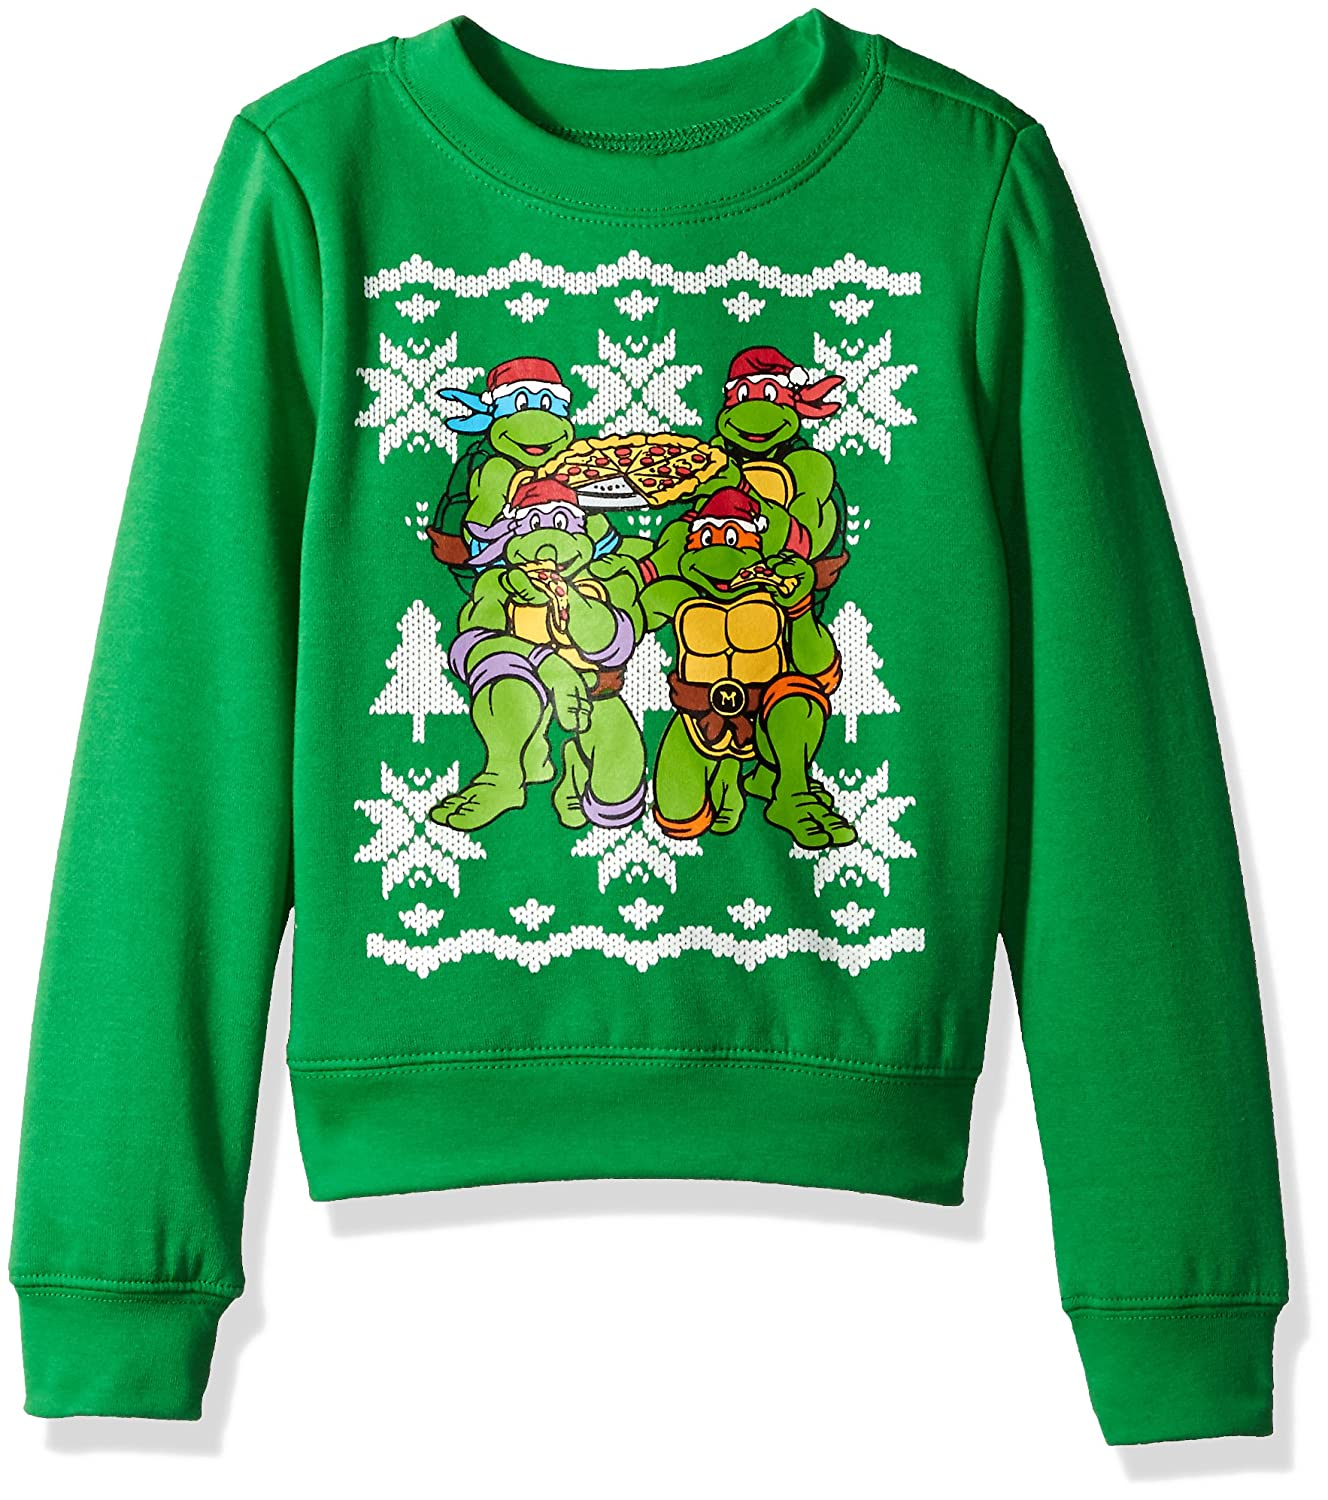 Teenage Mutant Ninja Turtles Boys Toddler Xmas Long-Sleeved Crew Sweatshirt, Kelly Green, 3T